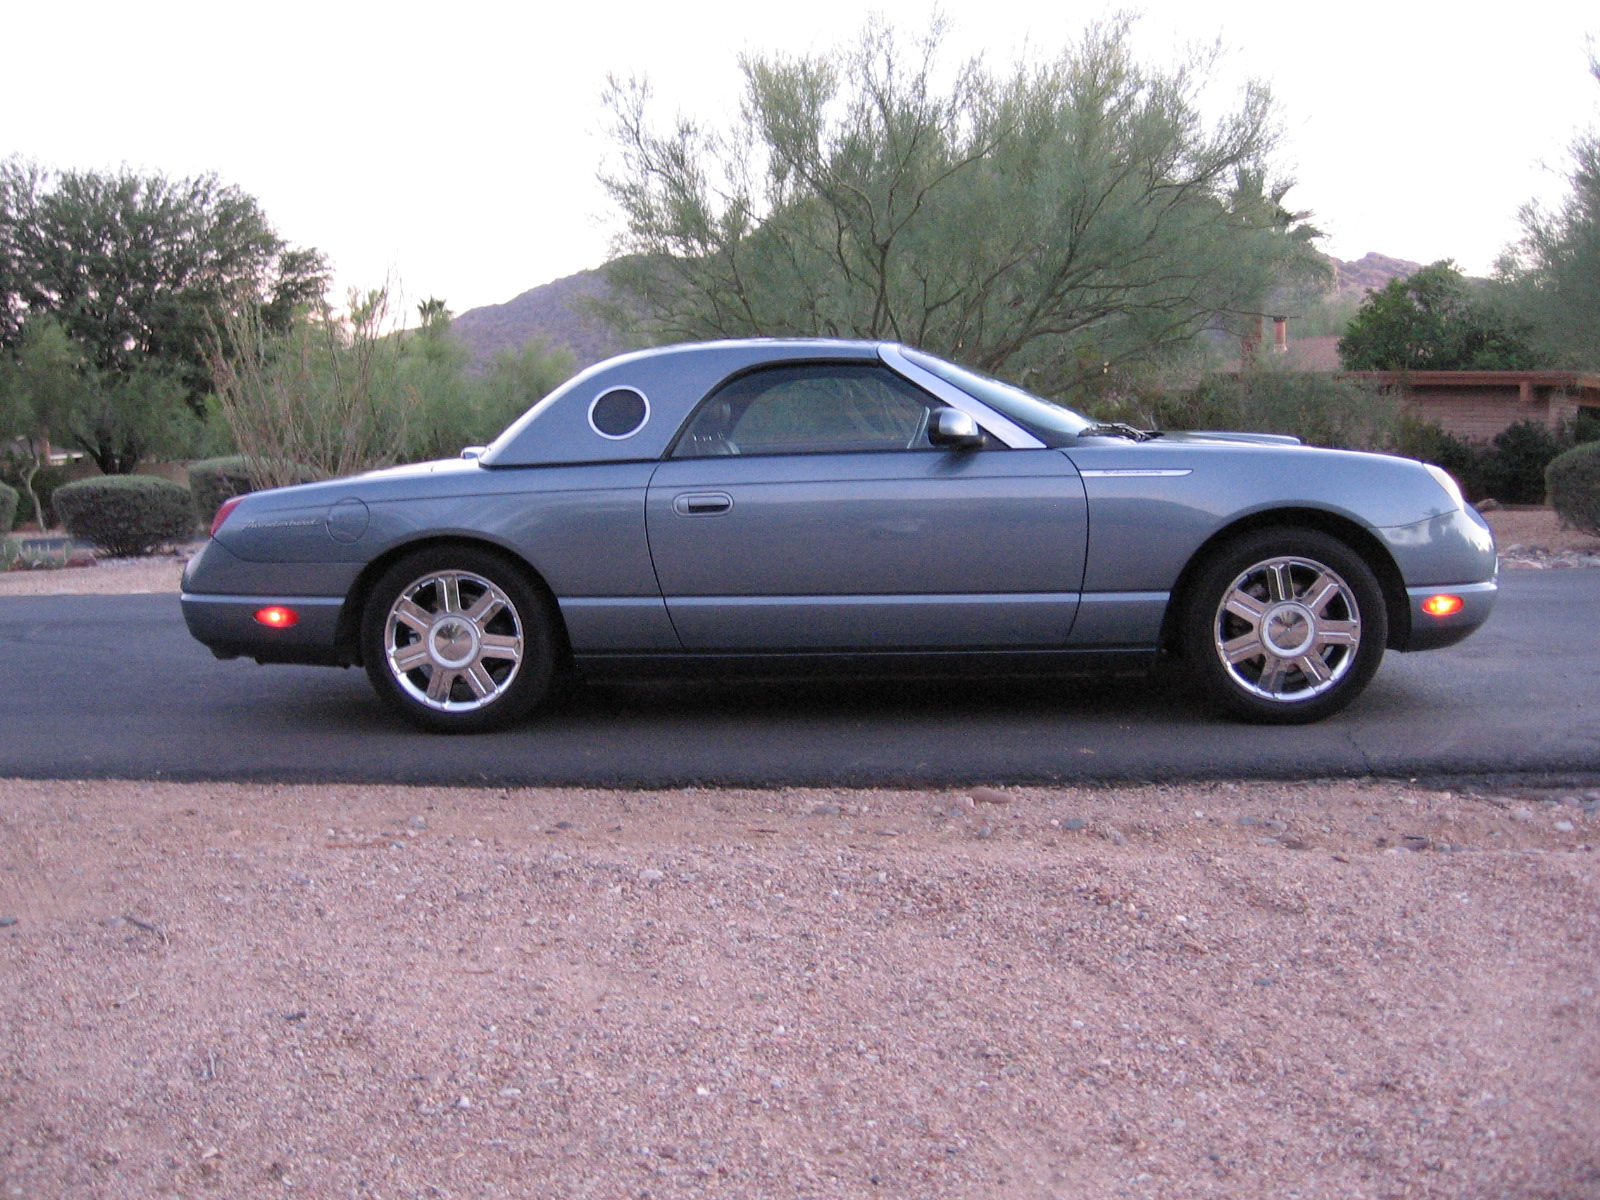 2005 ford thunderbird classic cars for sale from the crawdaddy. Black Bedroom Furniture Sets. Home Design Ideas